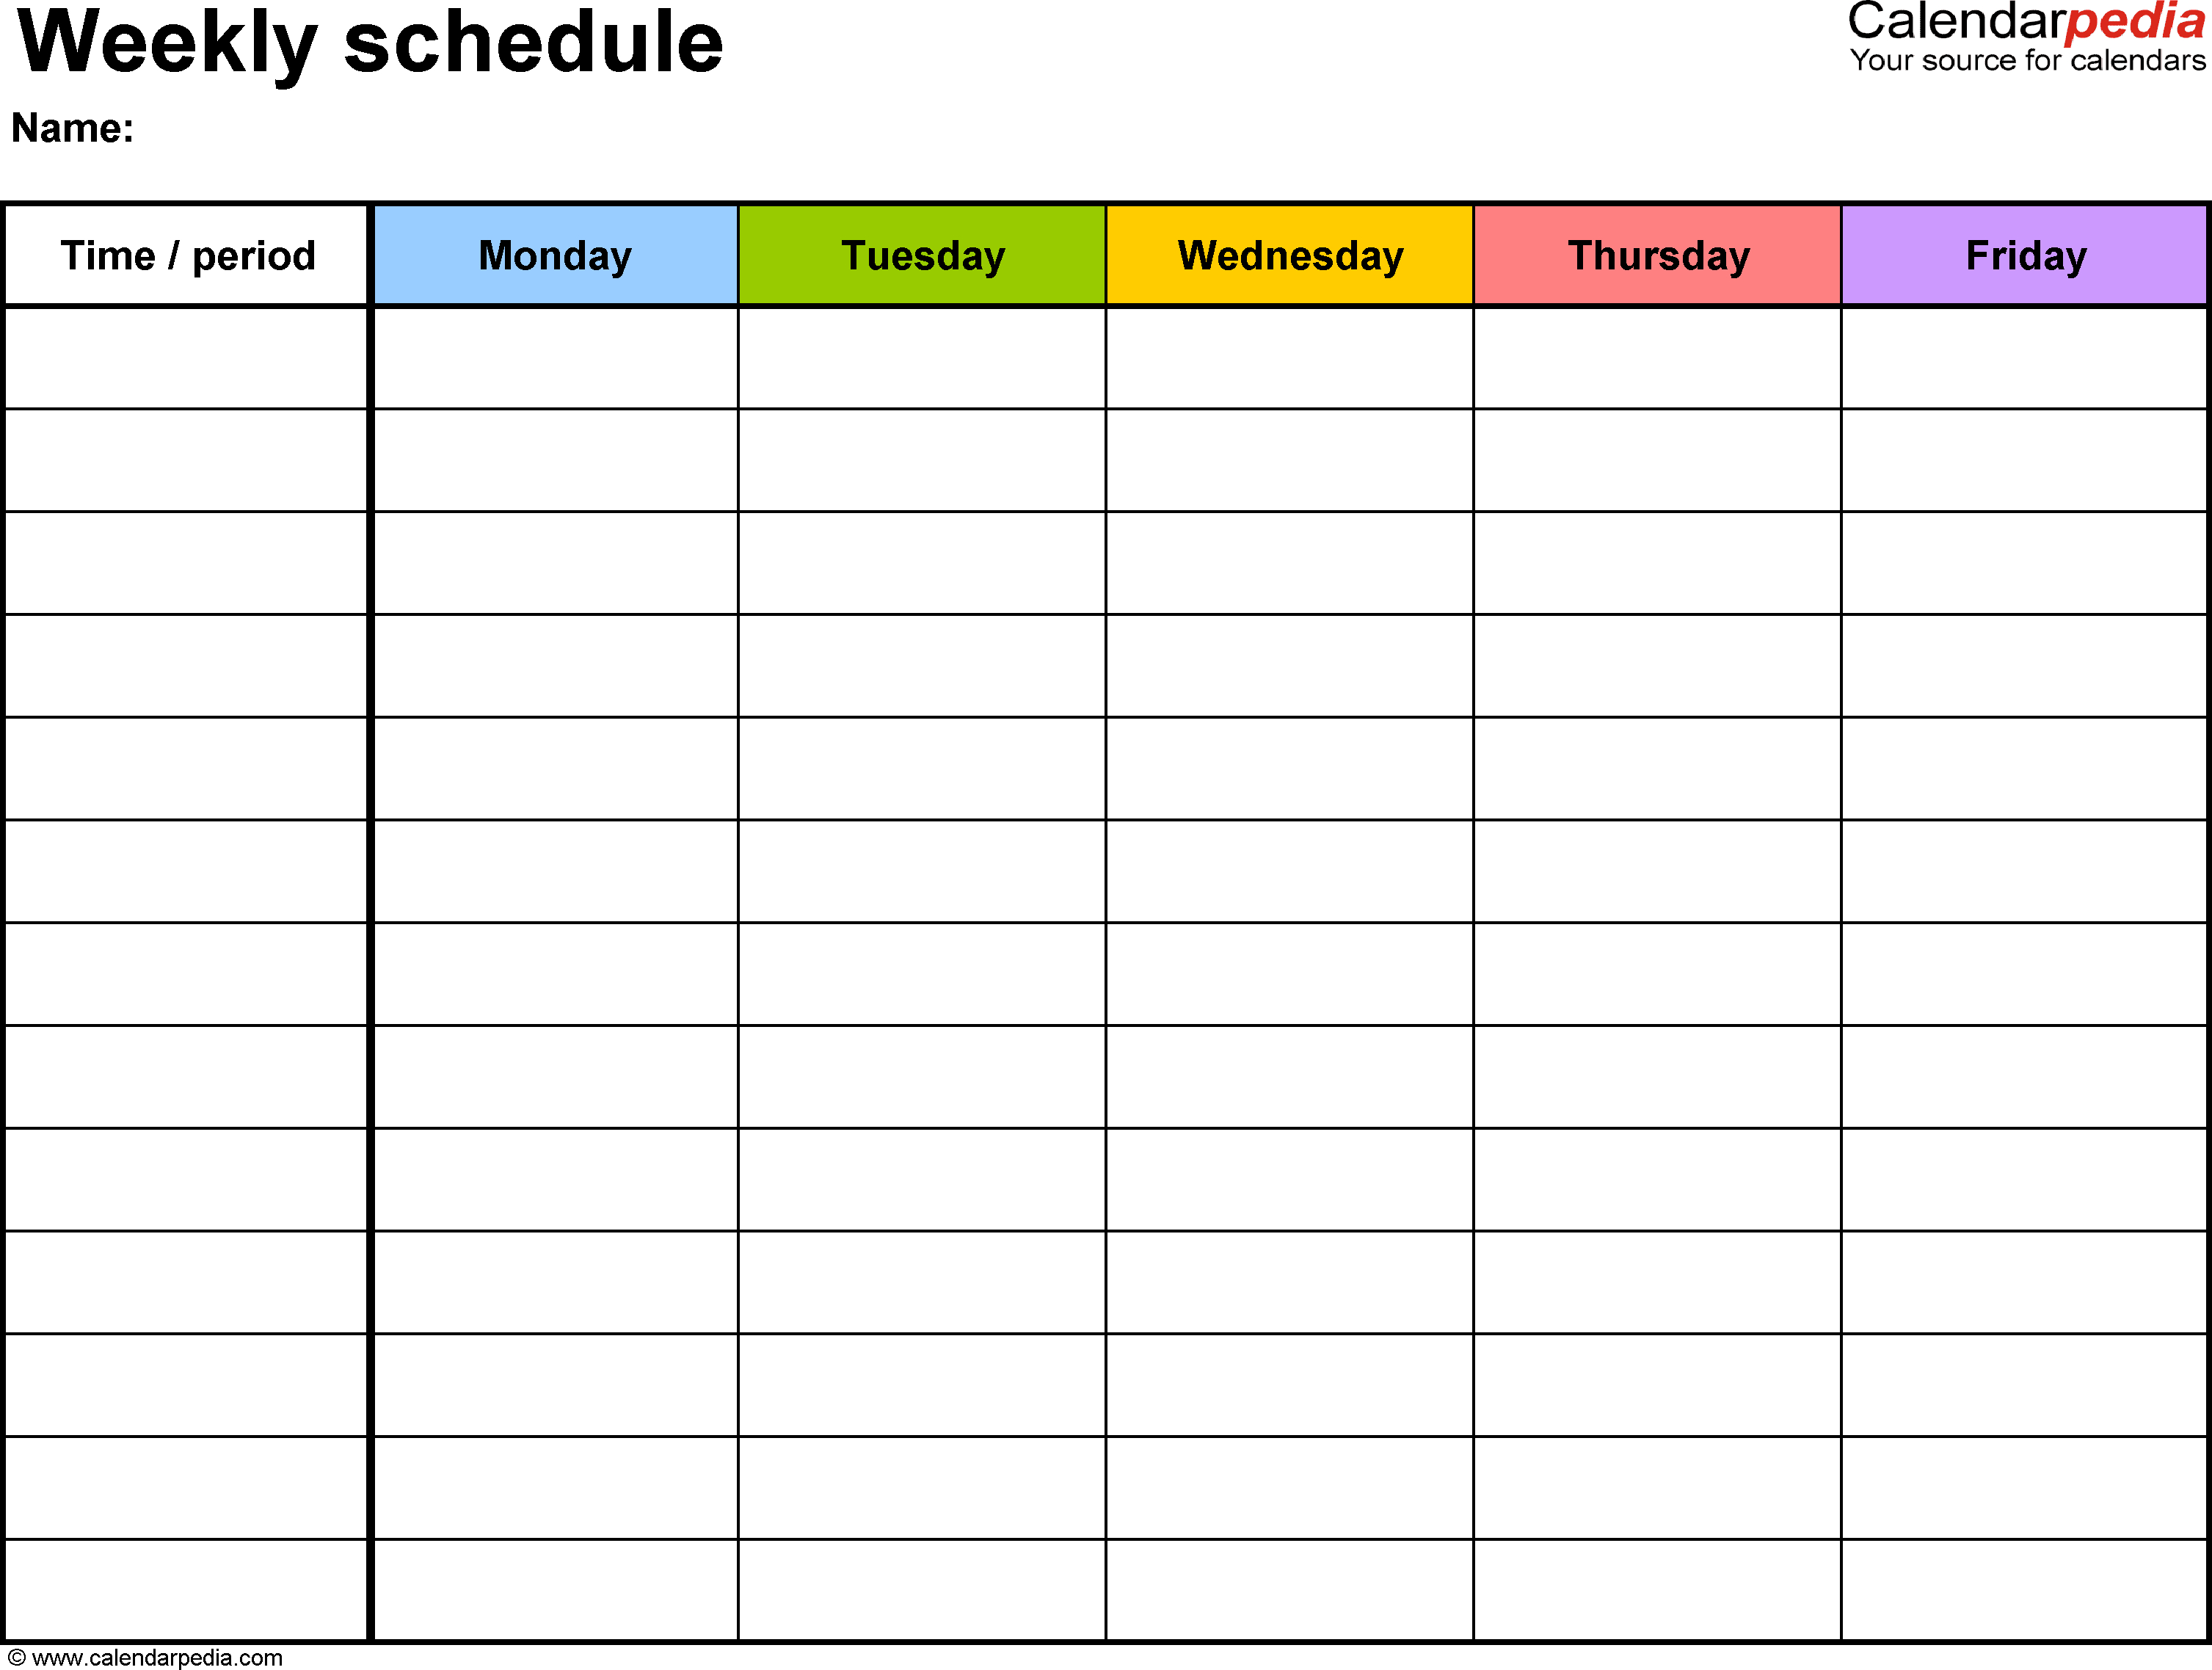 Free Weekly Schedule Templates For Word - 18 Templates throughout Editable Weekly Calendar Template